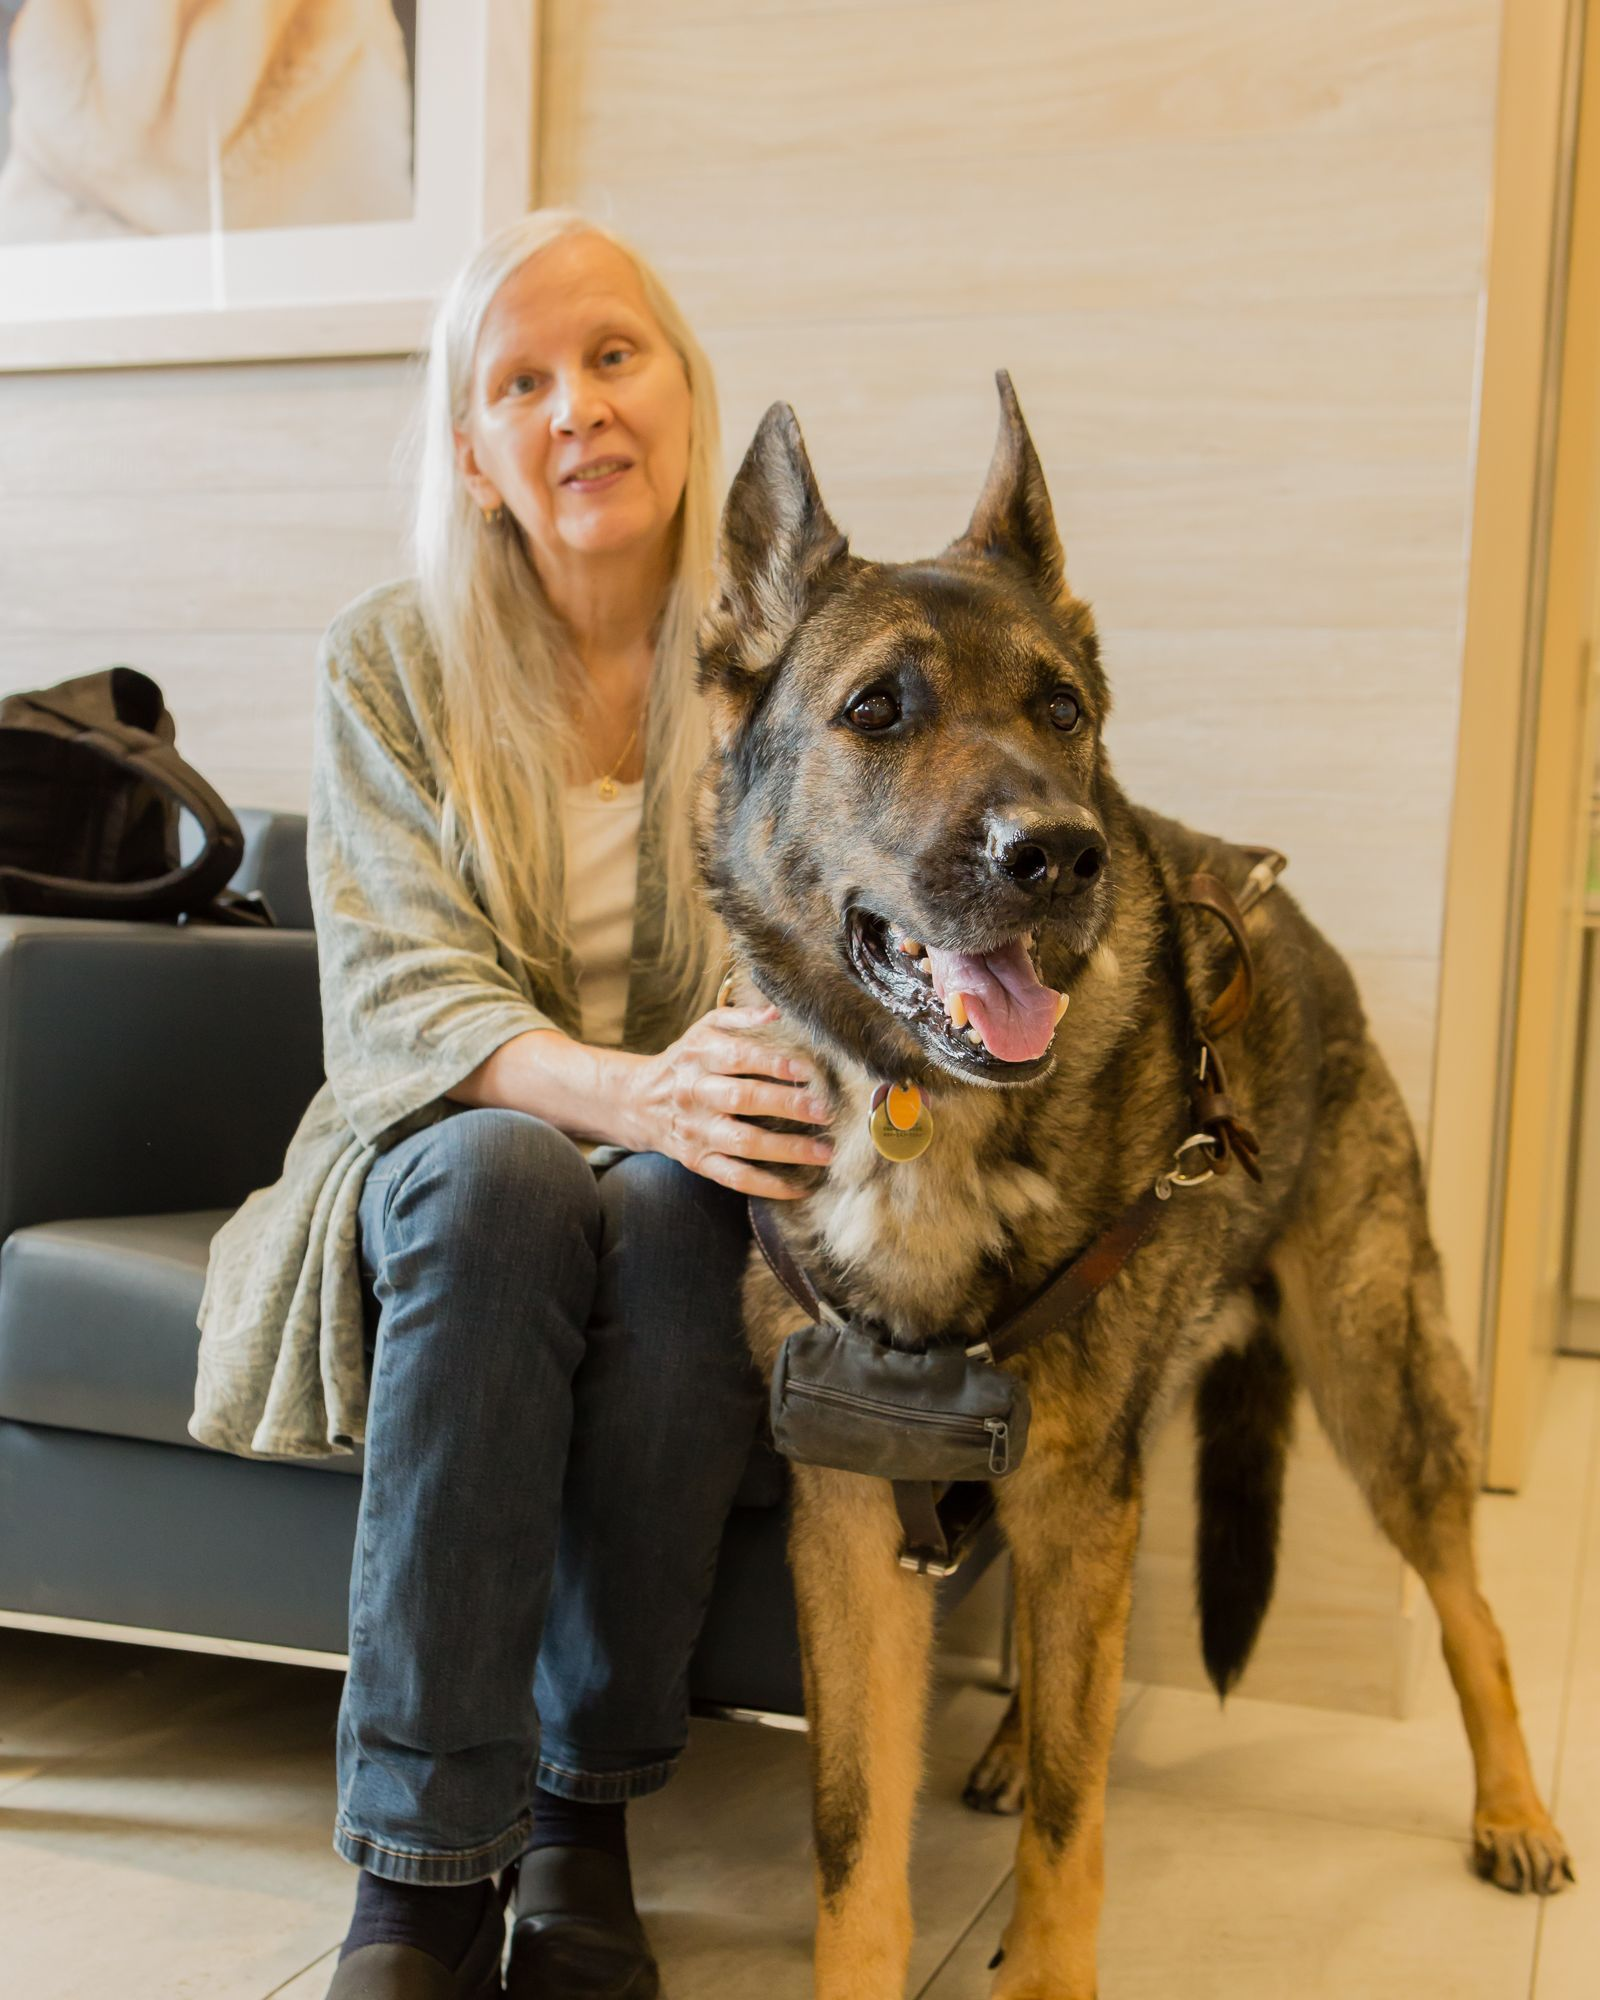 Today is Seeing Eye Guide Dog Anniversary Day, a